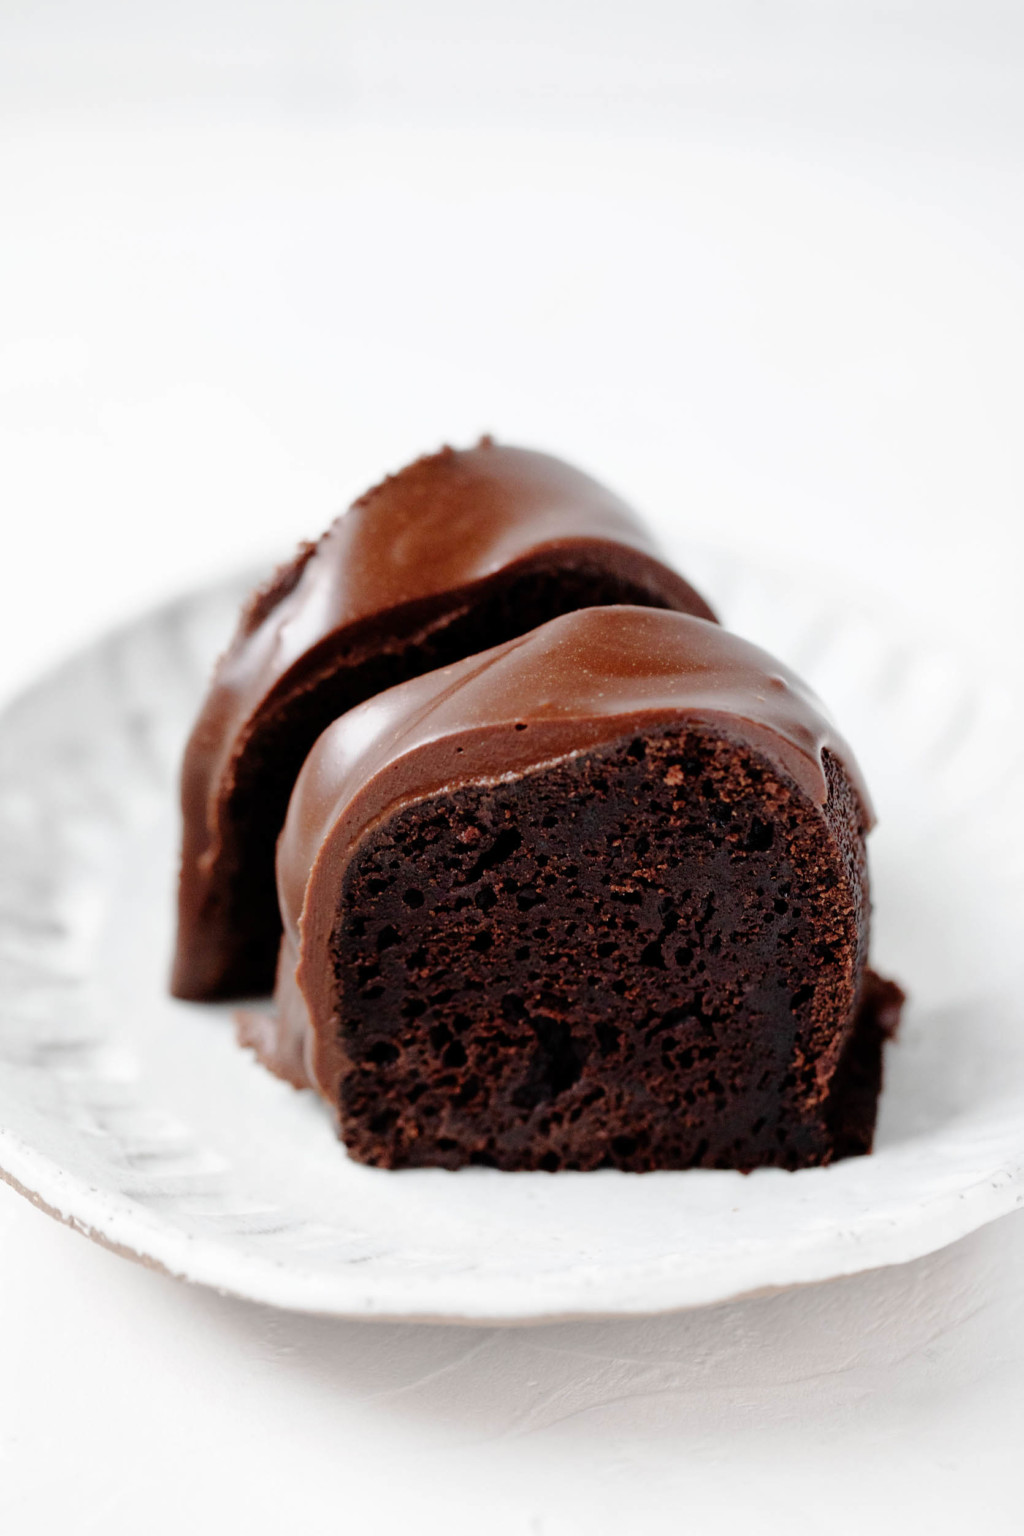 Two crosswise slices of a vegan chocolate bundt cake.